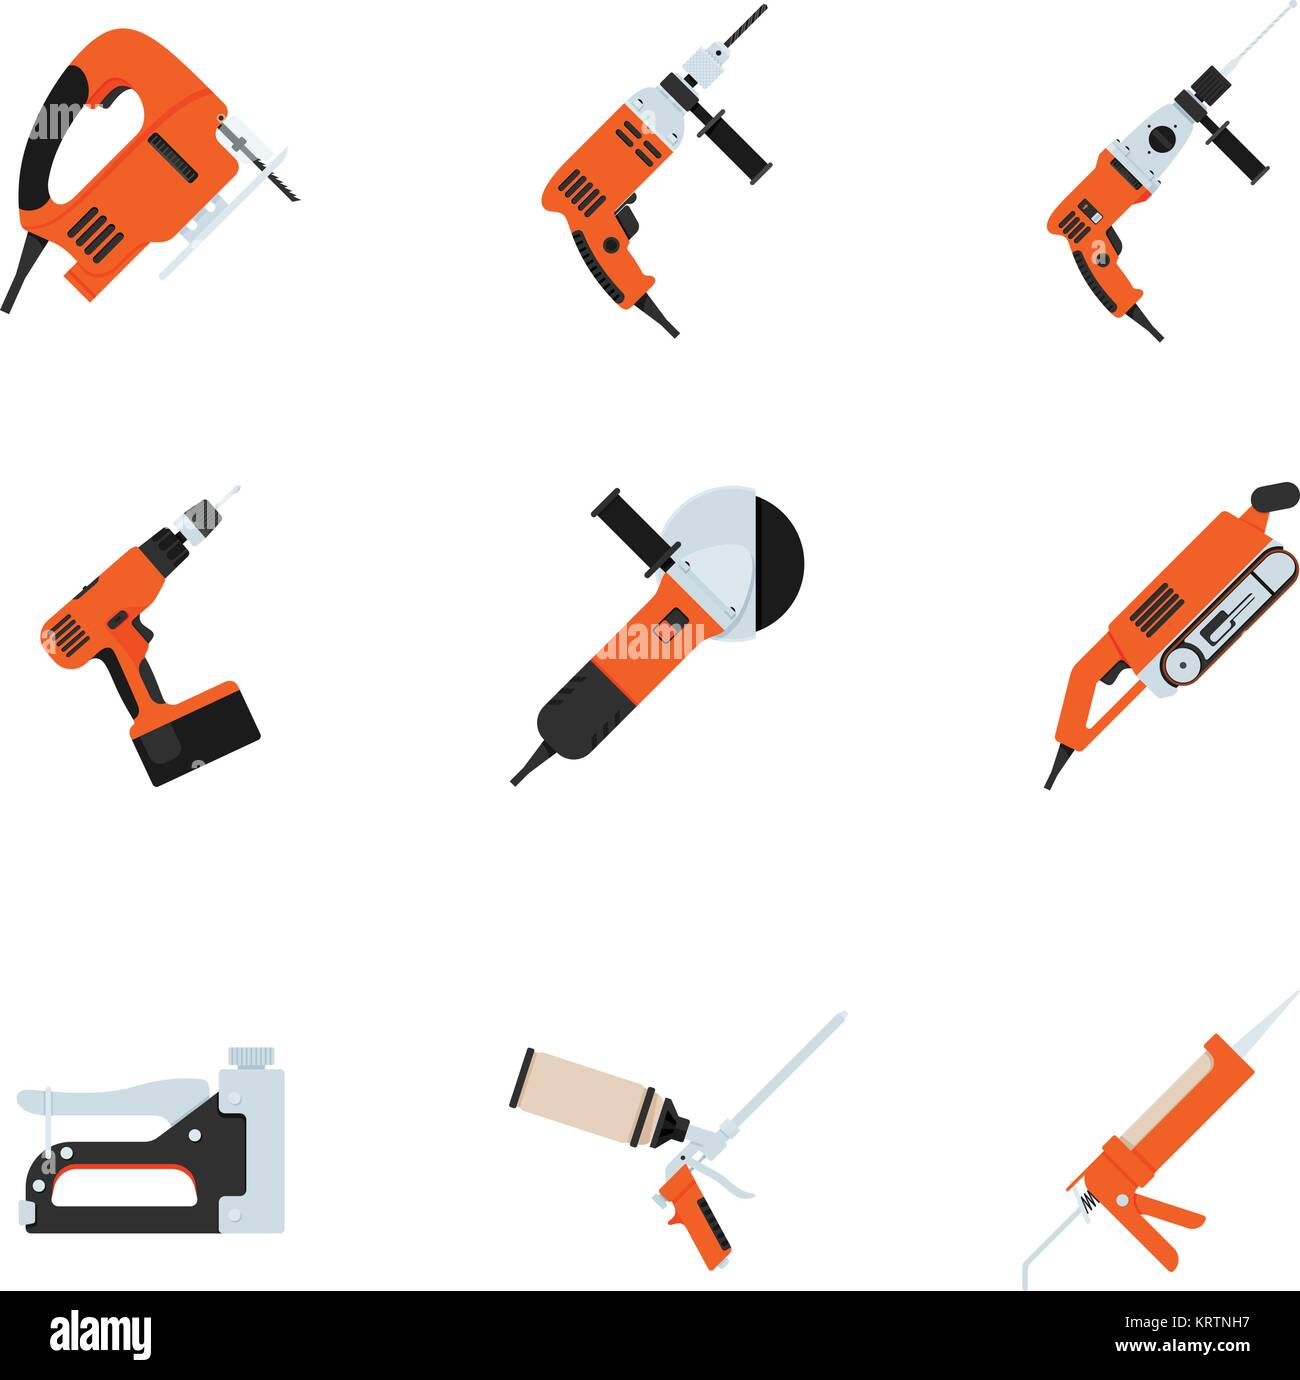 Set of building electrotools for repair  Vector illustration